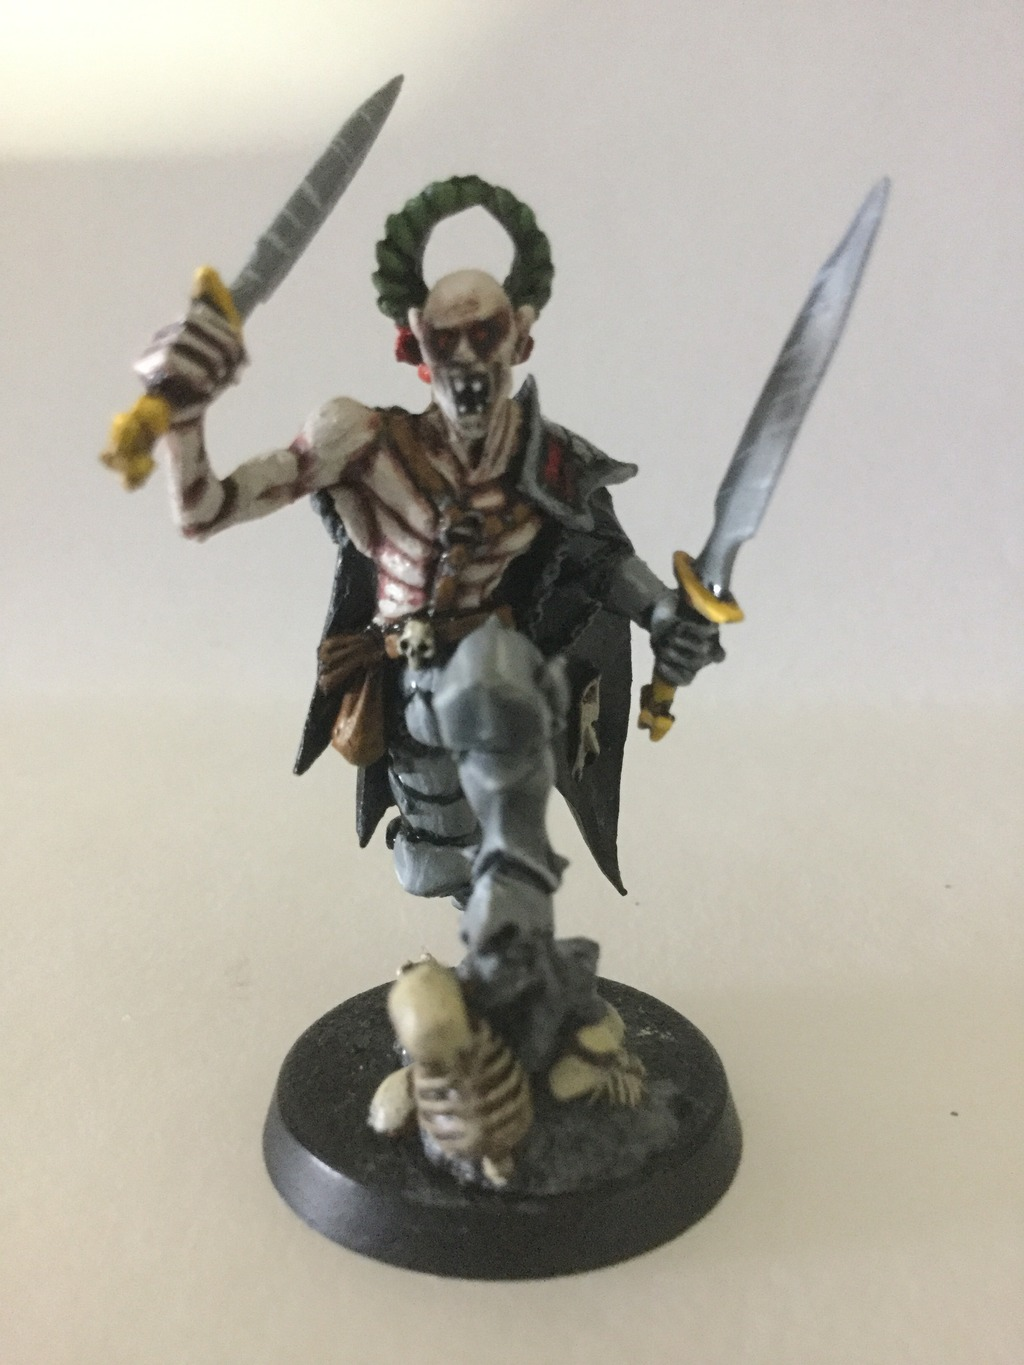 Bad's Undead IMG_0052_zpsytsacci3